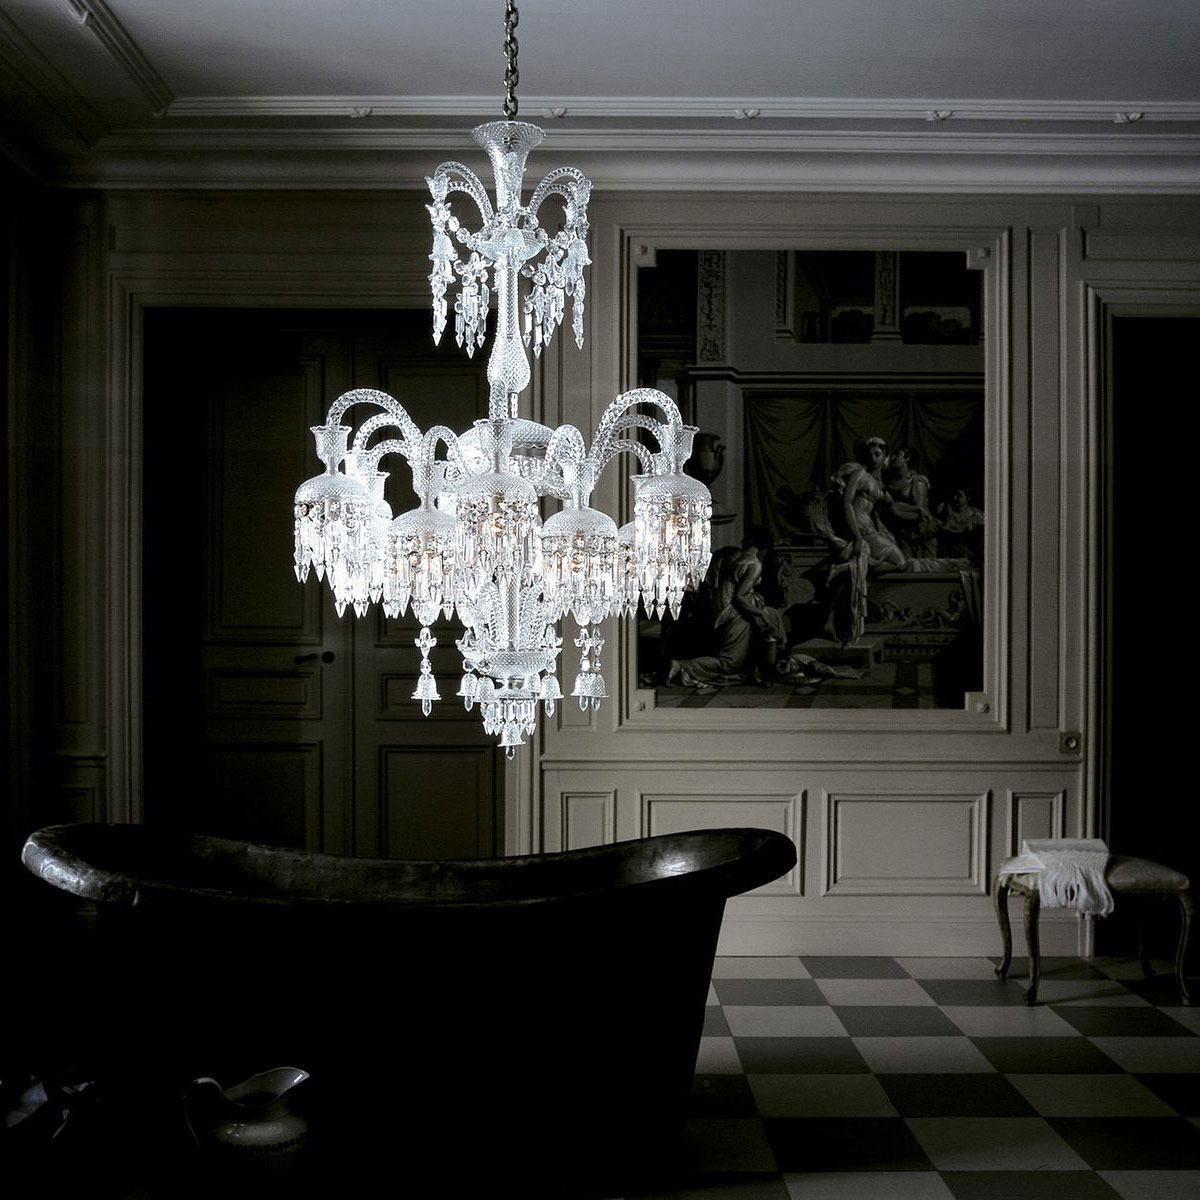 Baccarat Crystal, Solstice Crystal Chandelier 18 Light Crystal Chandelier